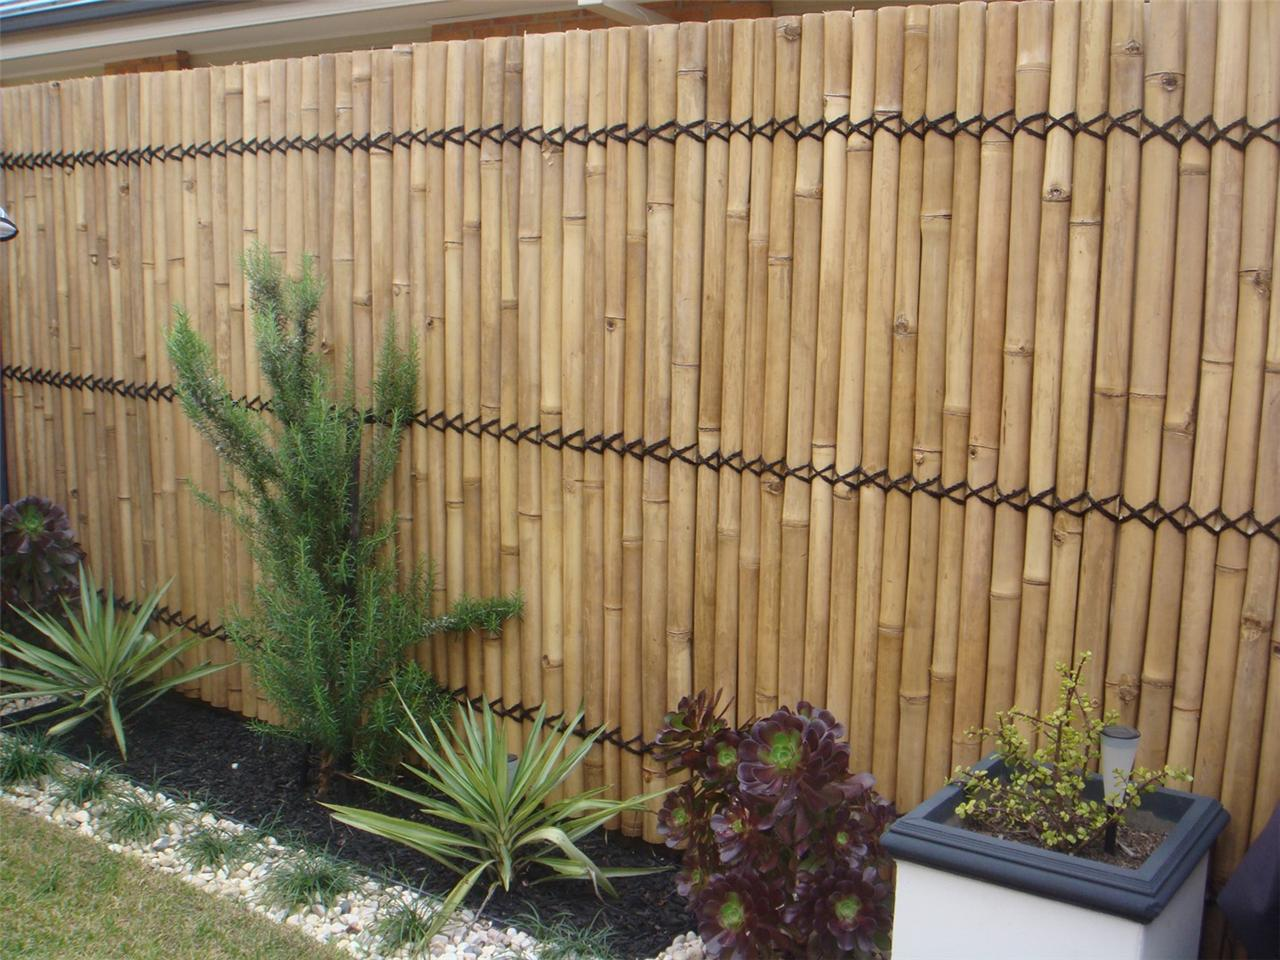 bamboo fence outdoor areas pinterest bamboo fence. Black Bedroom Furniture Sets. Home Design Ideas